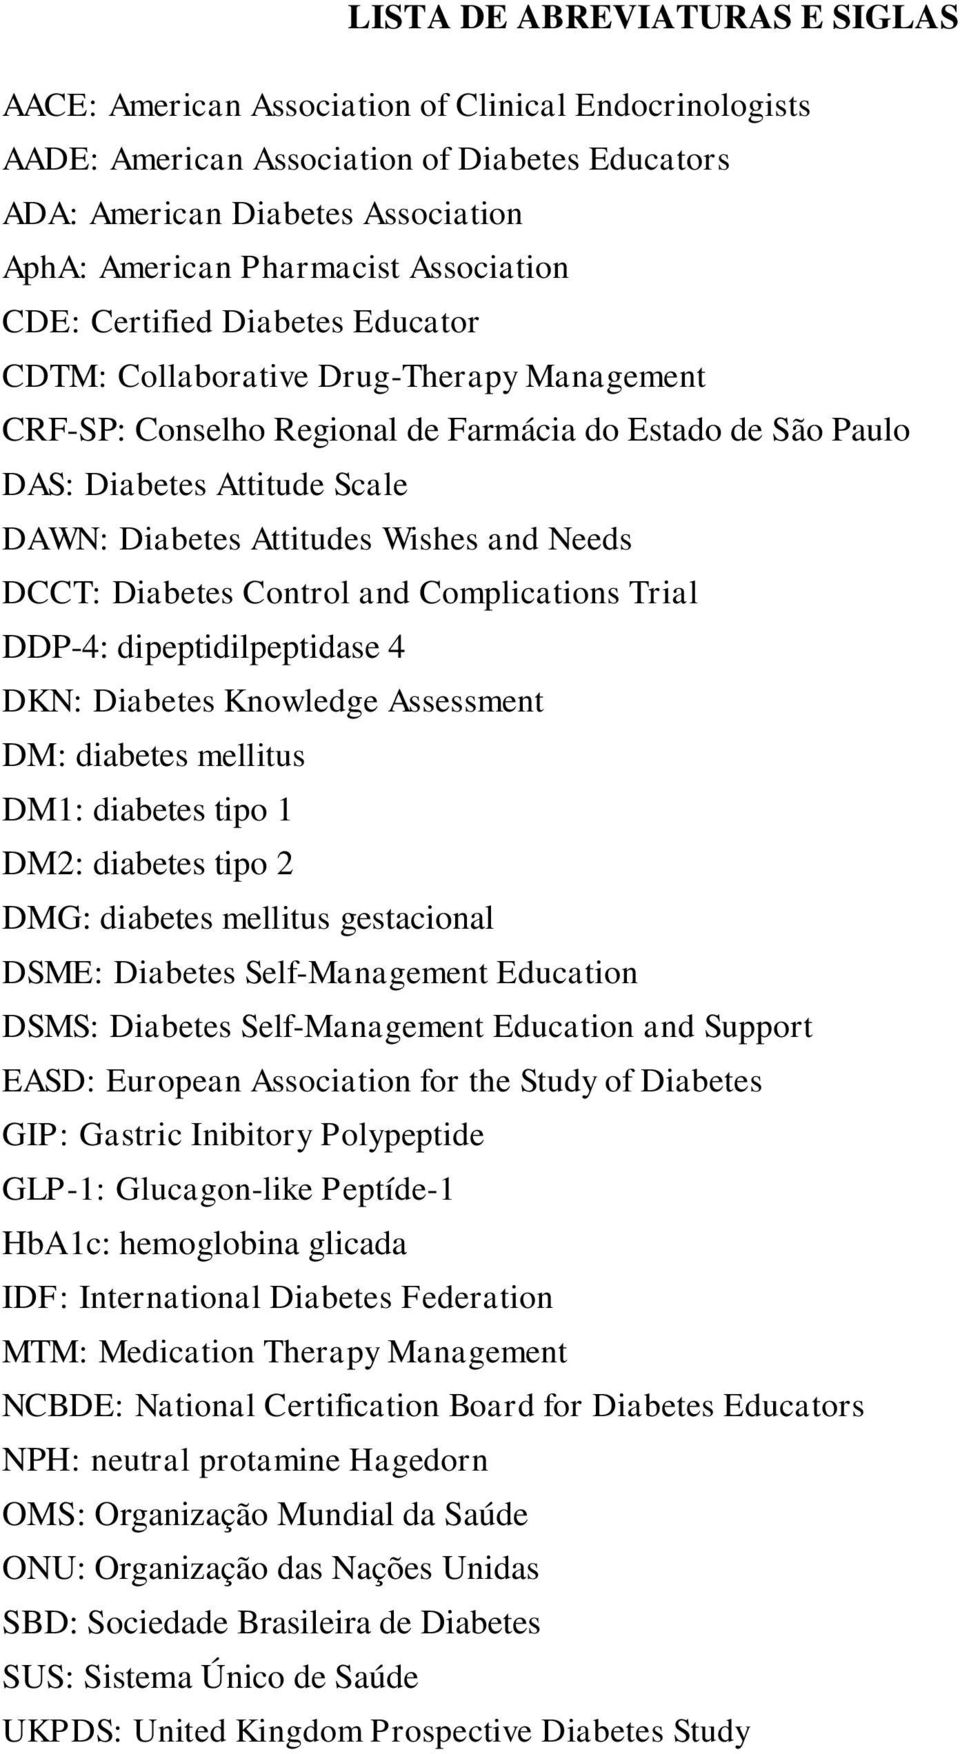 Attitudes Wishes and Needs DCCT: Diabetes Control and Complications Trial DDP-4: dipeptidilpeptidase 4 DKN: Diabetes Knowledge Assessment DM: diabetes mellitus DM1: diabetes tipo 1 DM2: diabetes tipo